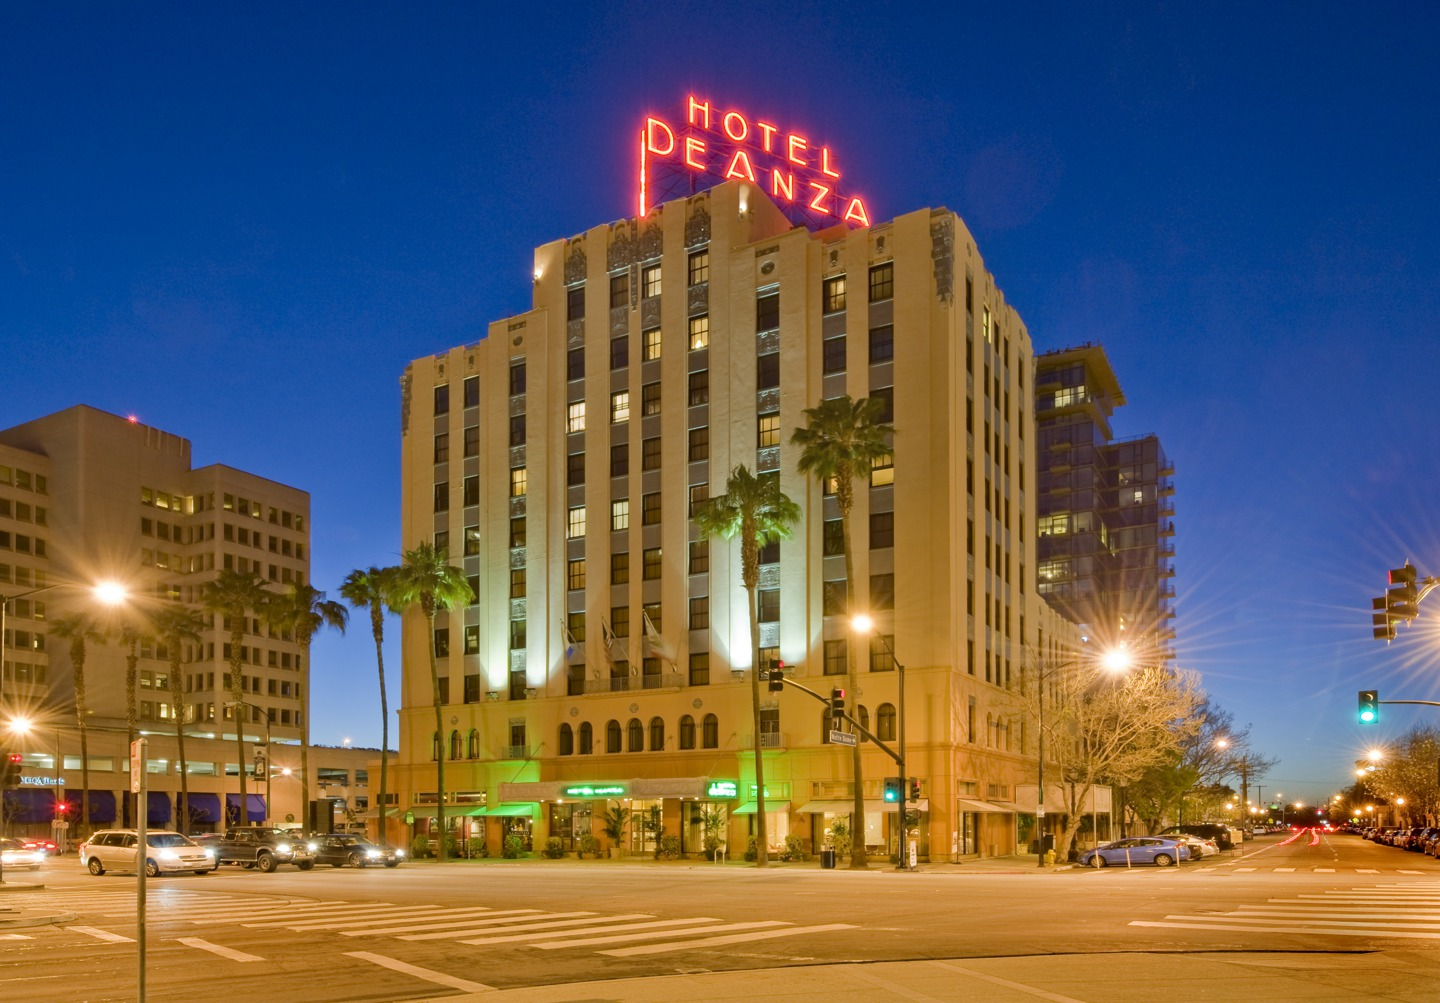 The neon Hotel De Anza sign has been a fixture in San Jose for decades.